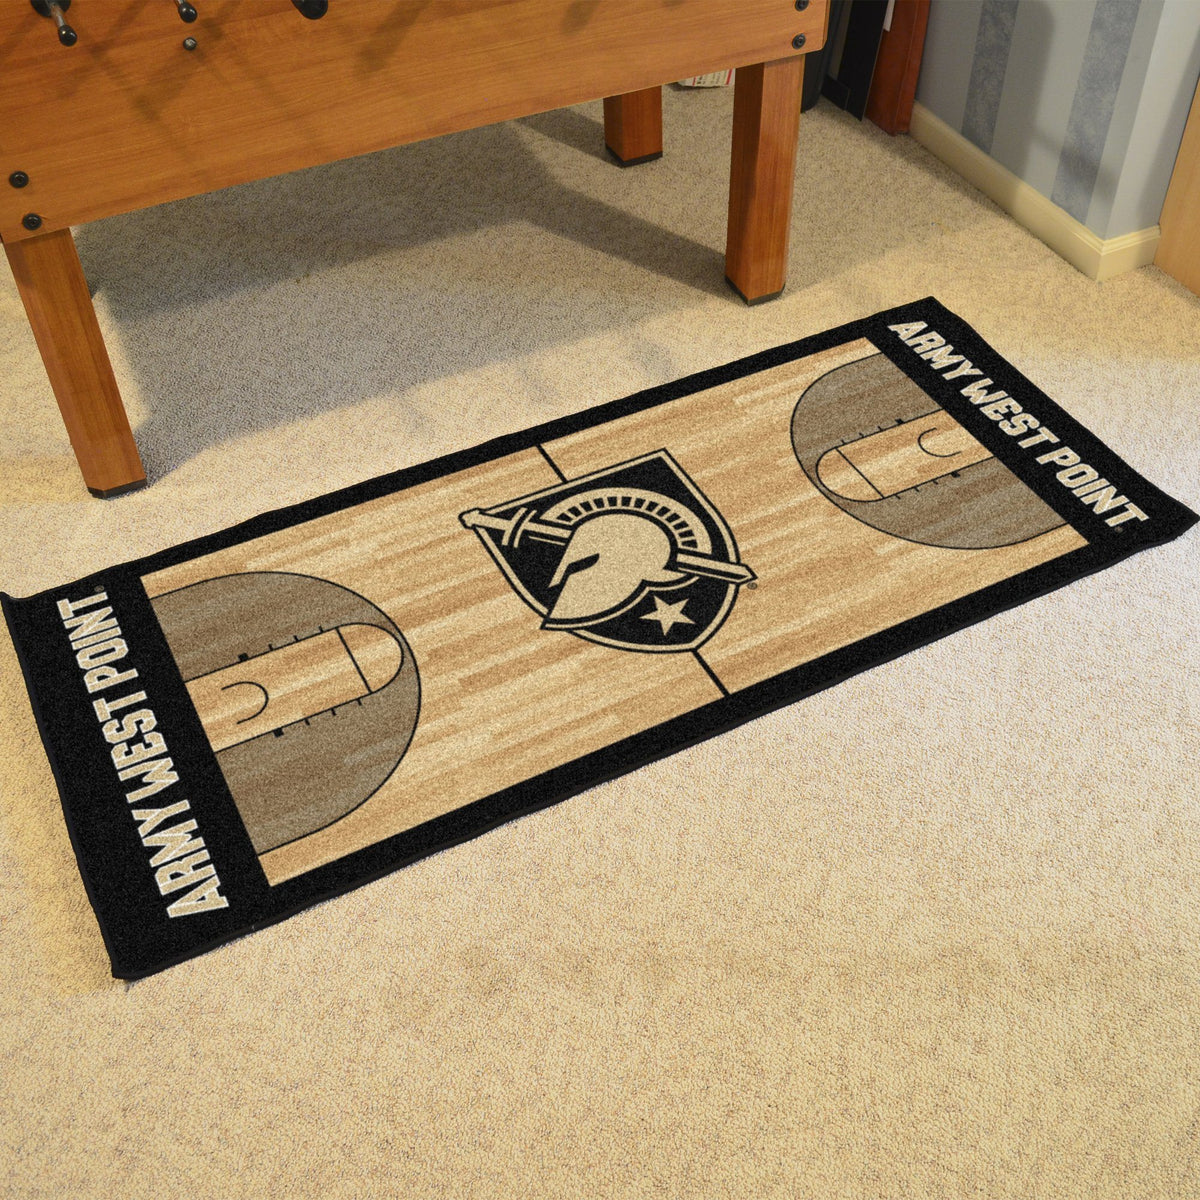 Collegiate - NCAA Basketball Runner Collegiate Mats, Rectangular Mats, NCAA Basketball Runner, Collegiate, Home Fan Mats Army West Point